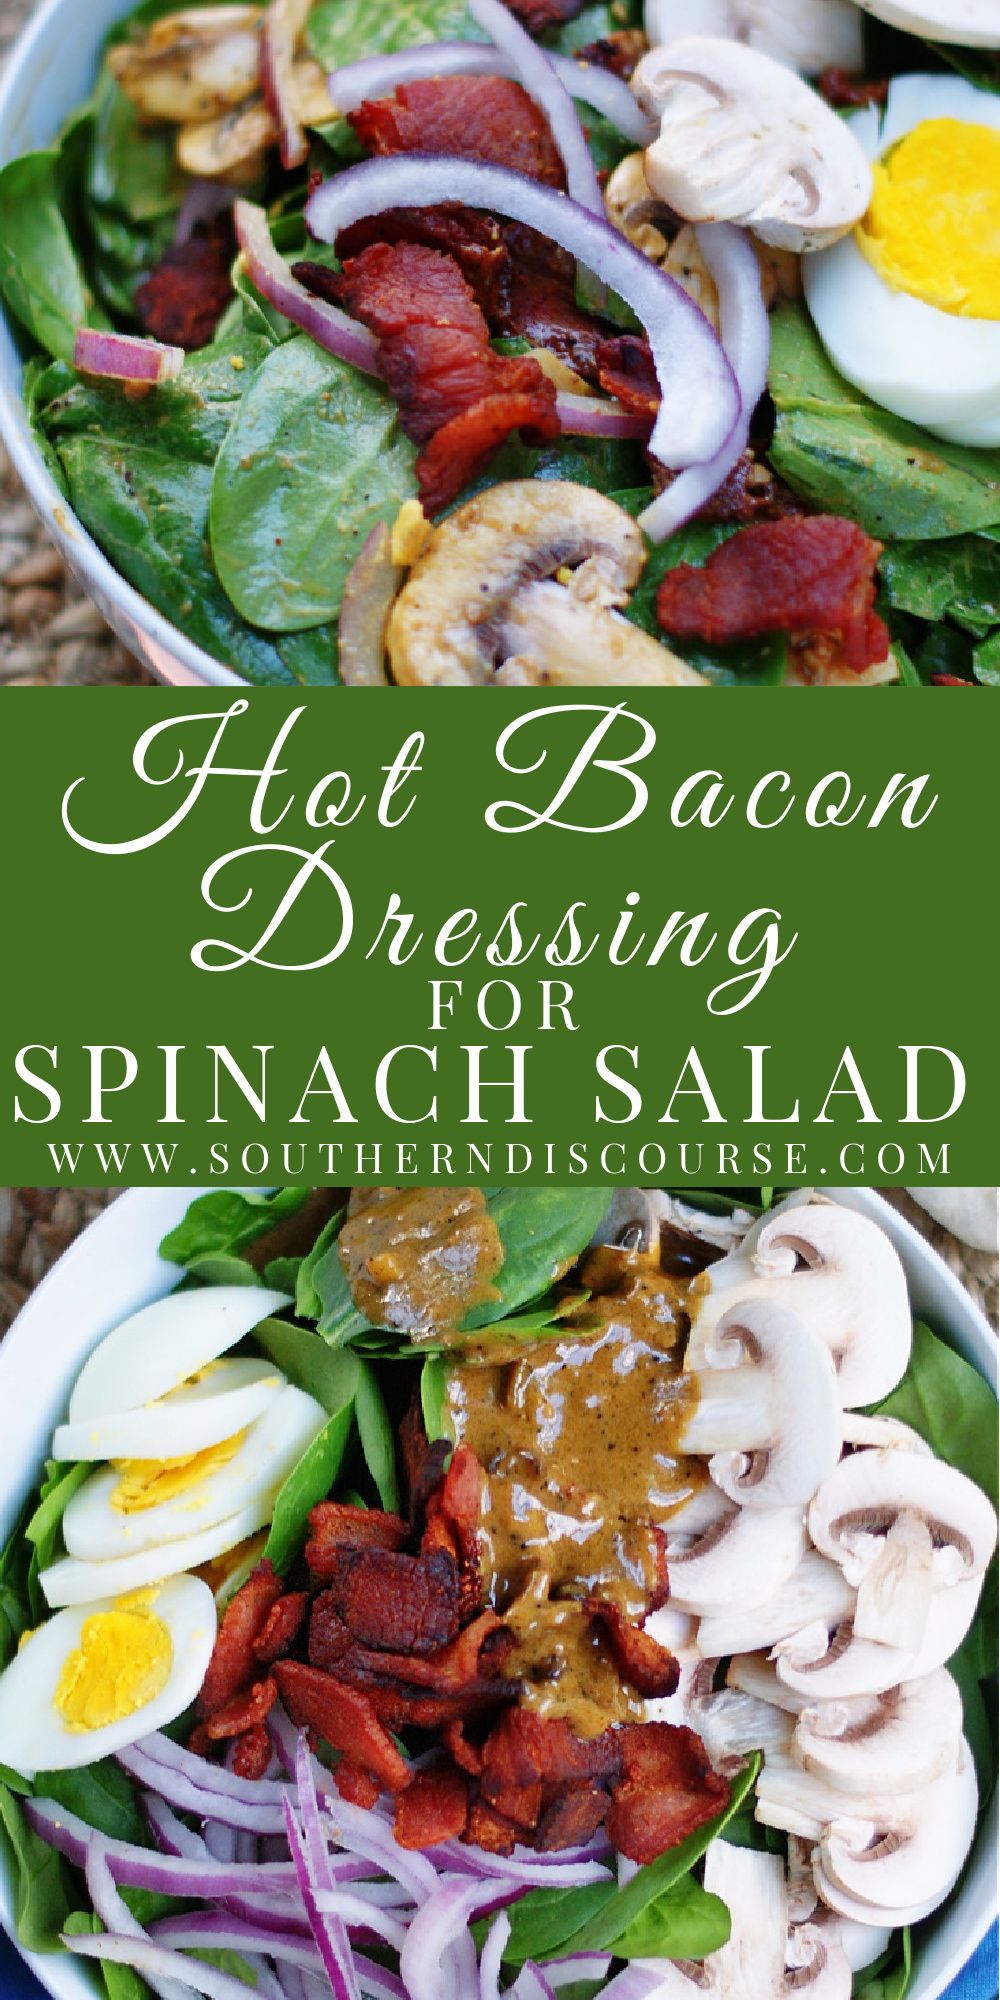 Hot Bacon Dressing is a tangy delight, served warm over bright spinach greens, chopped bacon, sliced mushrooms, red onion, and boiled eggs.